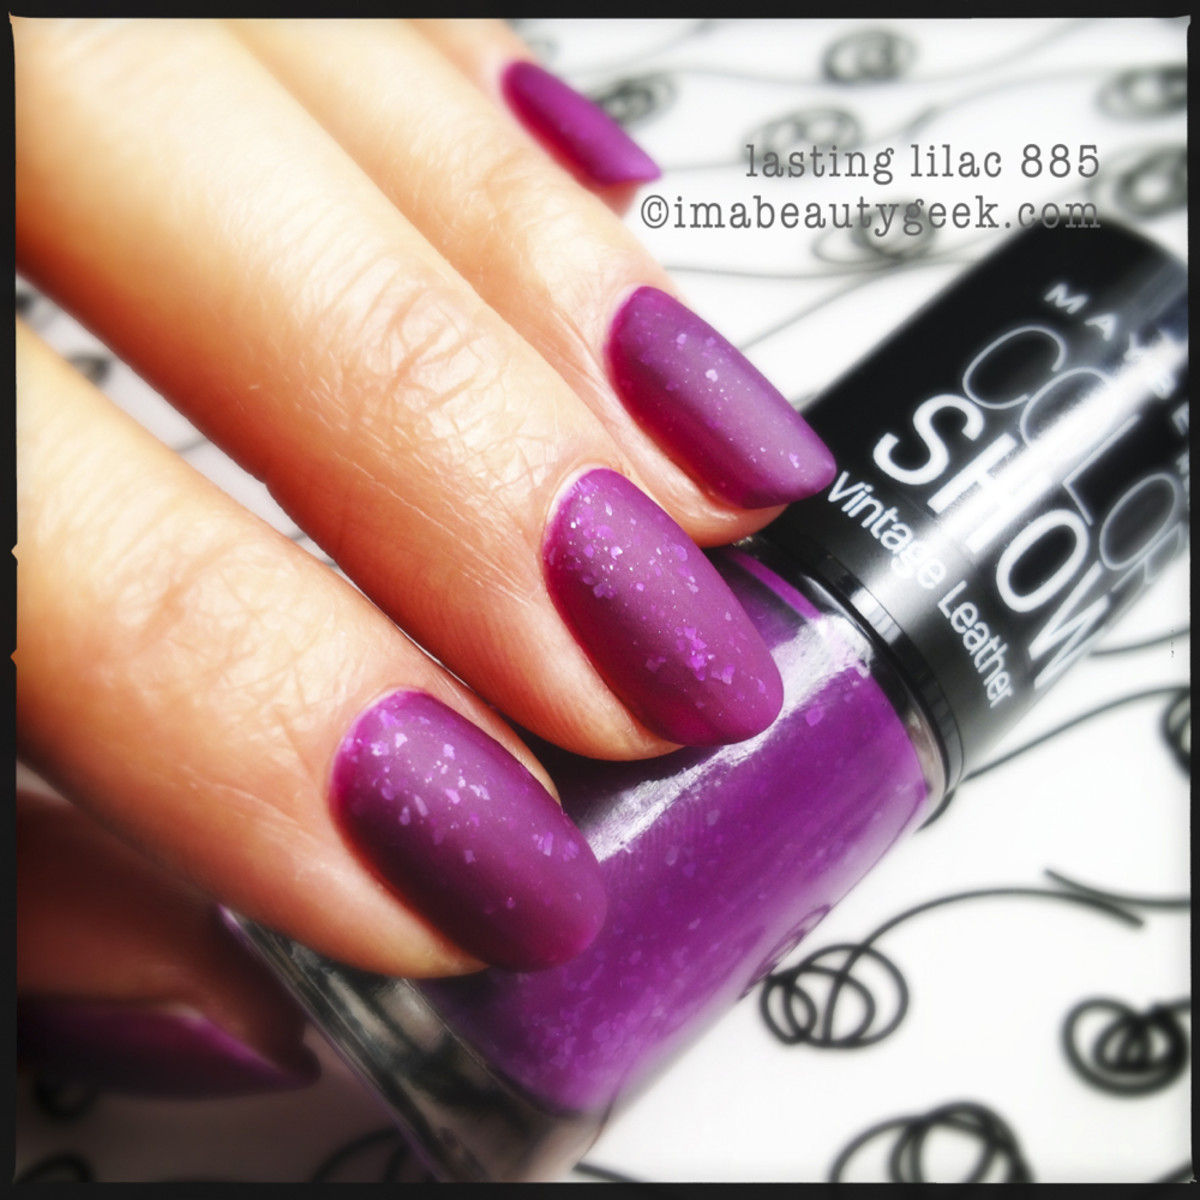 Maybelline Lasting Lilac - Vintage Leather Collection 2013